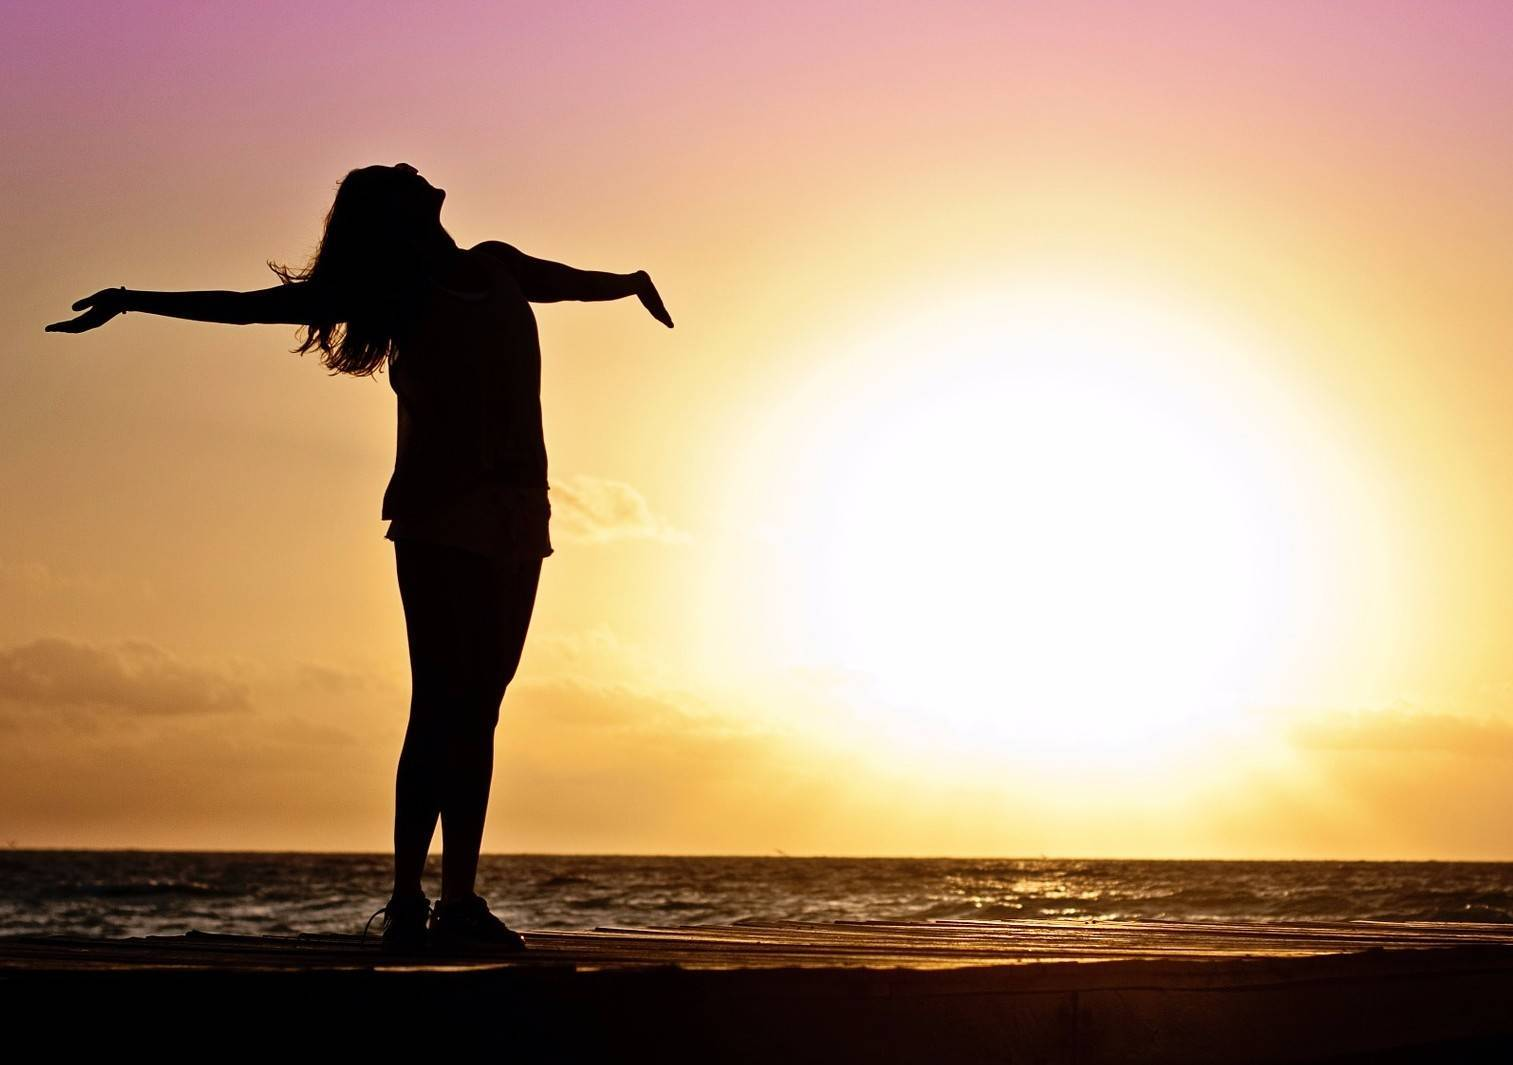 f76e2d4b7dd1e72ce2ea_happy_woman_sunset_silhouette-591576_1920.jpg